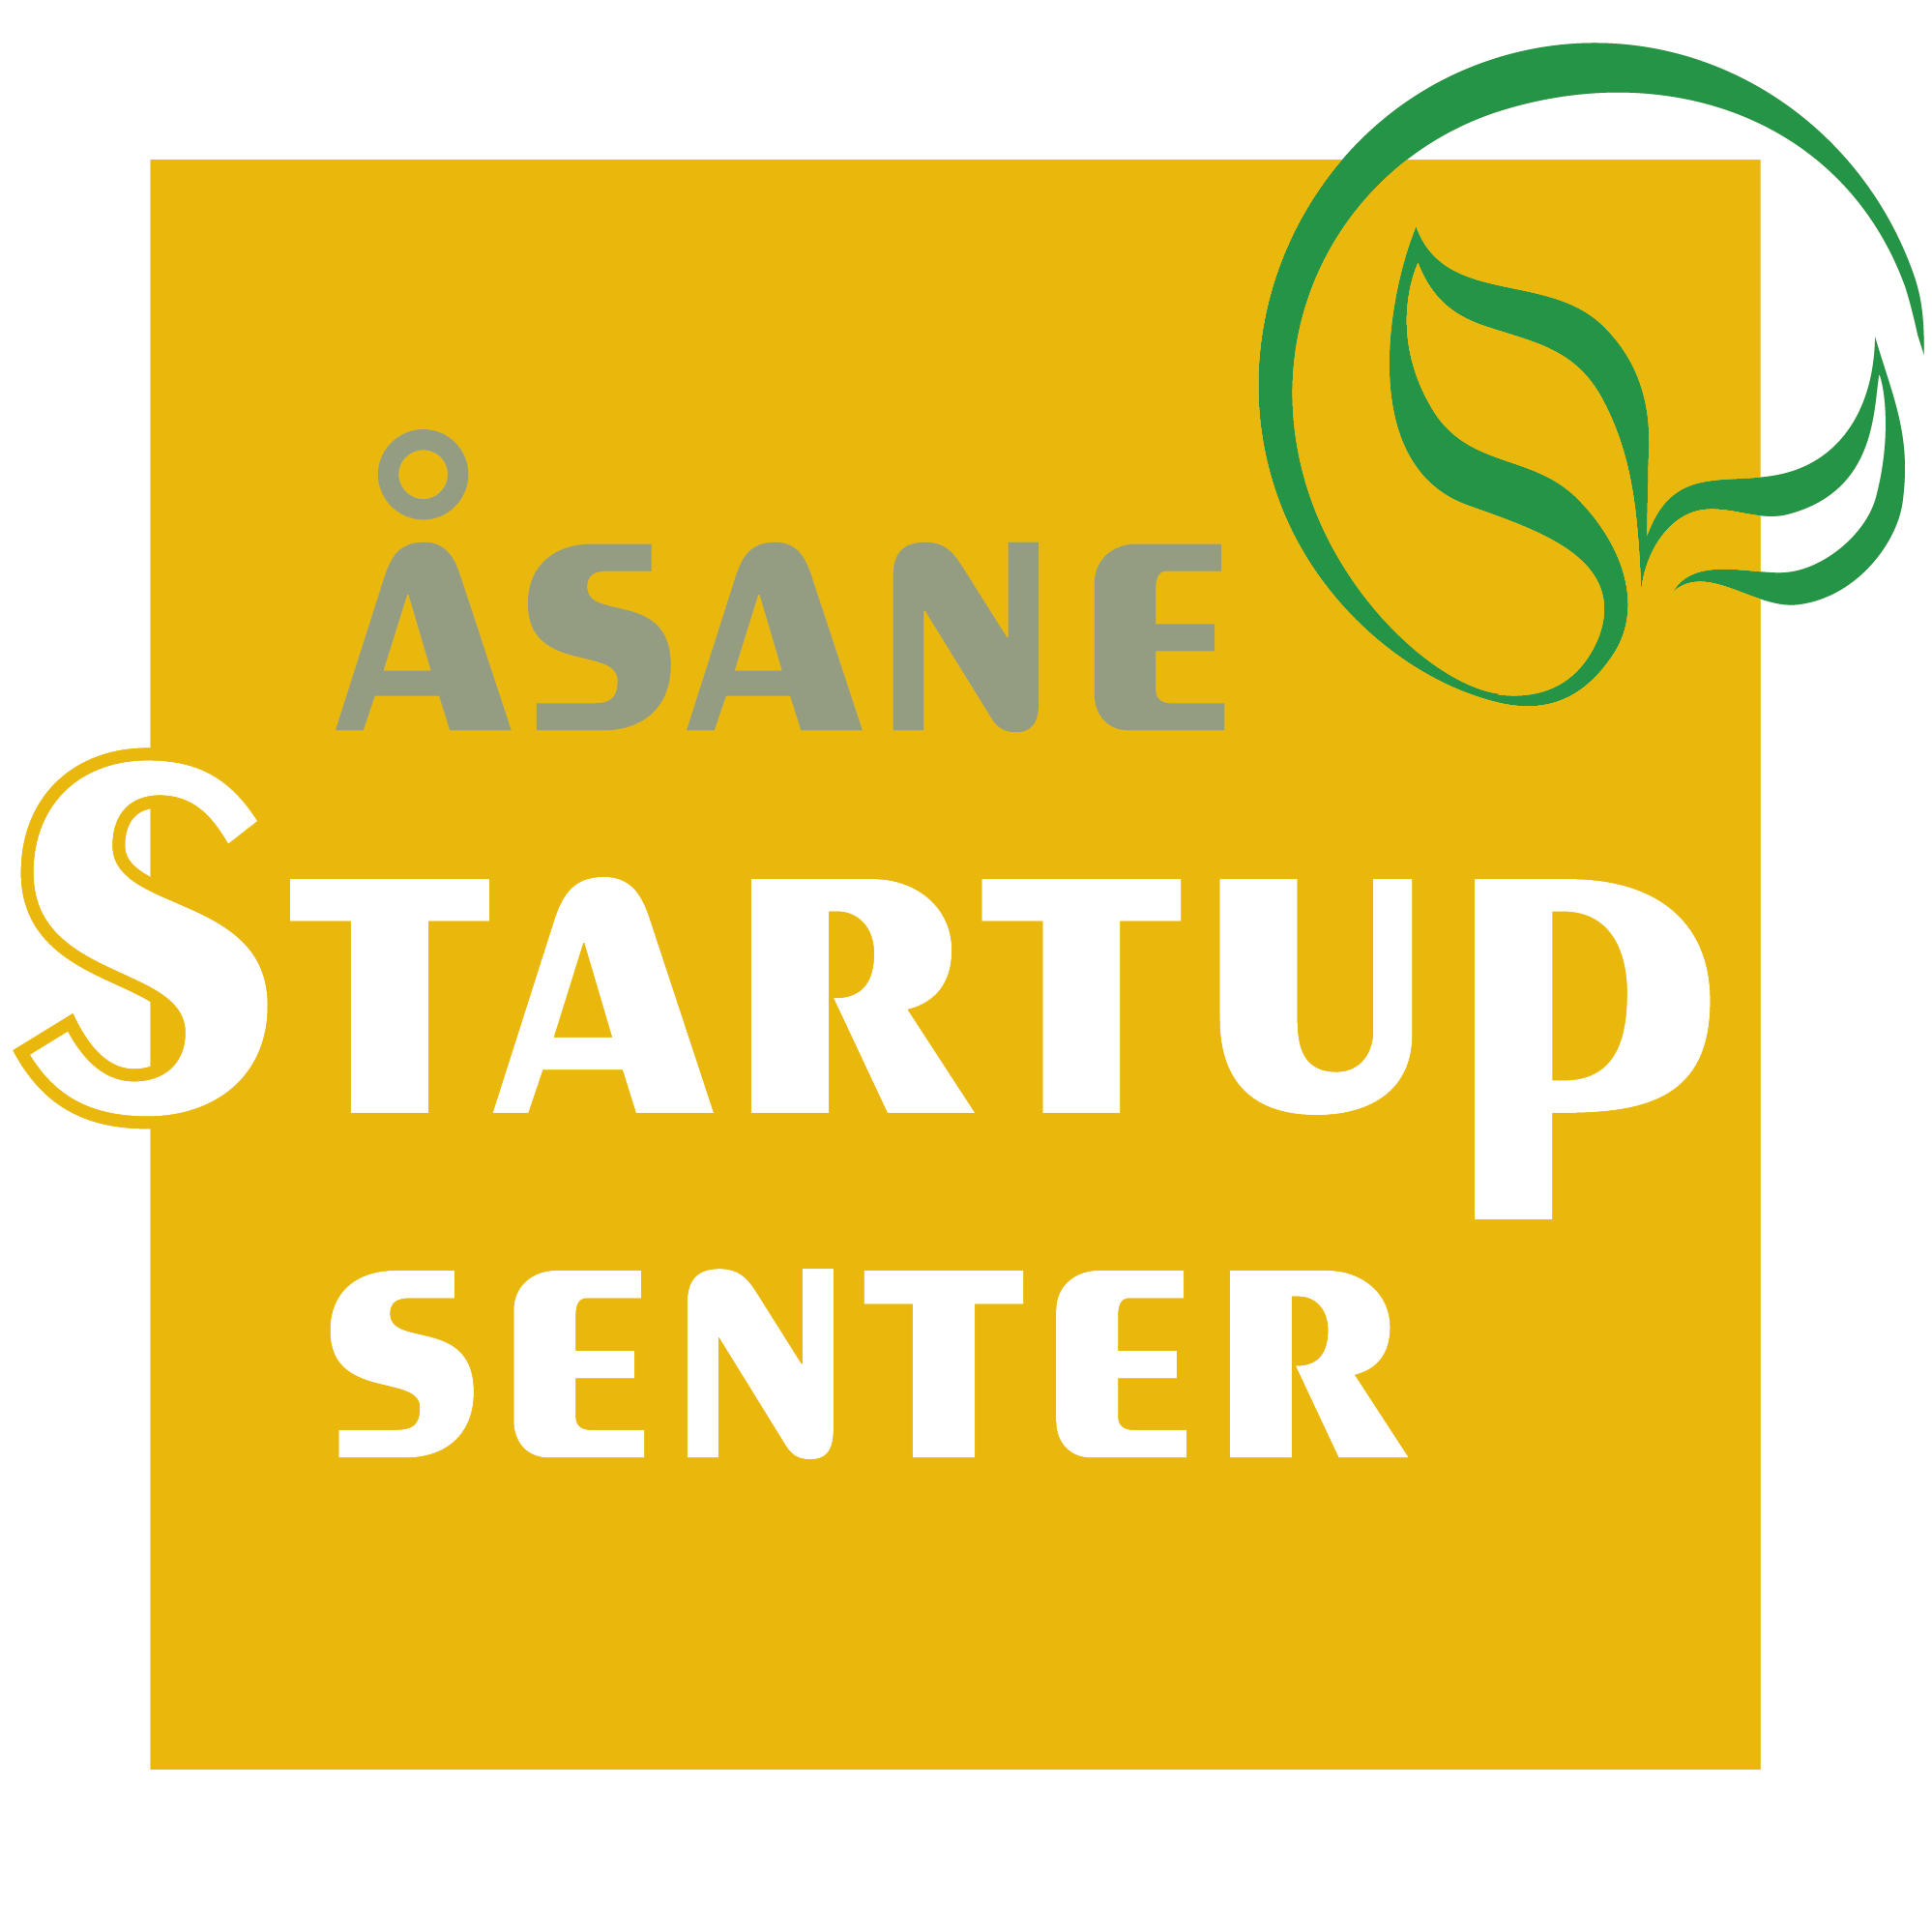 logodesign startupsenter